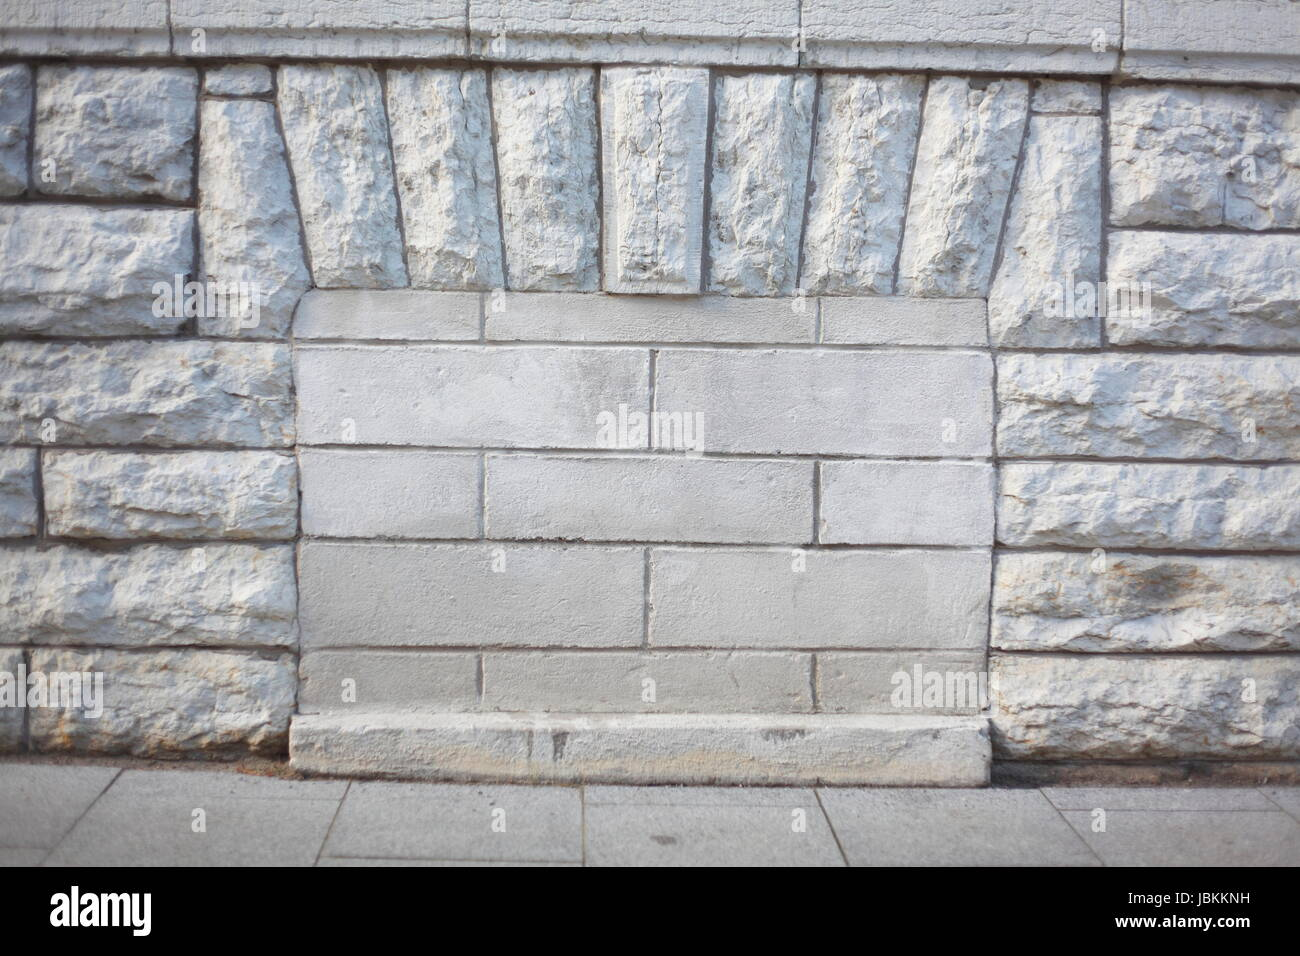 Bricked up Cellar Windows, Old KGB Headquarter, Former KGB Building, Tallinn , Estonia, Baltic States, Europe - Stock Image